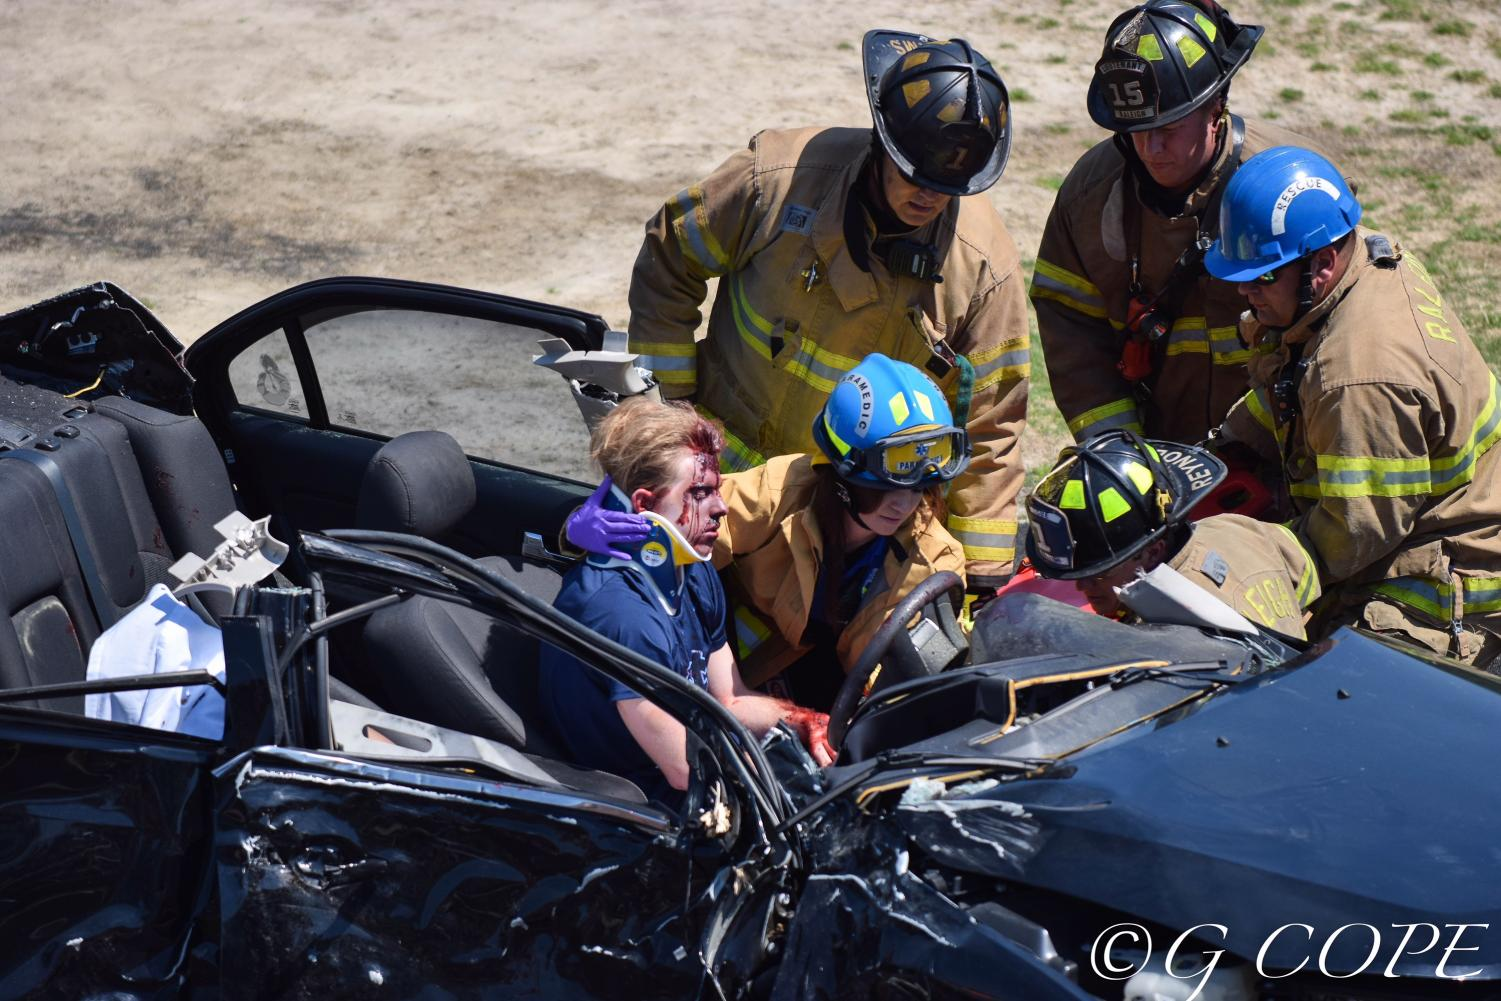 Carrying out an intensely realistic car wreck simulation, Millbrook students demonstrate the tragedy that is very probable to occur as a result of distracted or intoxicated driving. Speaker Jack Molloy shares the story of losing his sister to drunk driving in hopes to make students realize the importance of attentive driving and careful decision making.